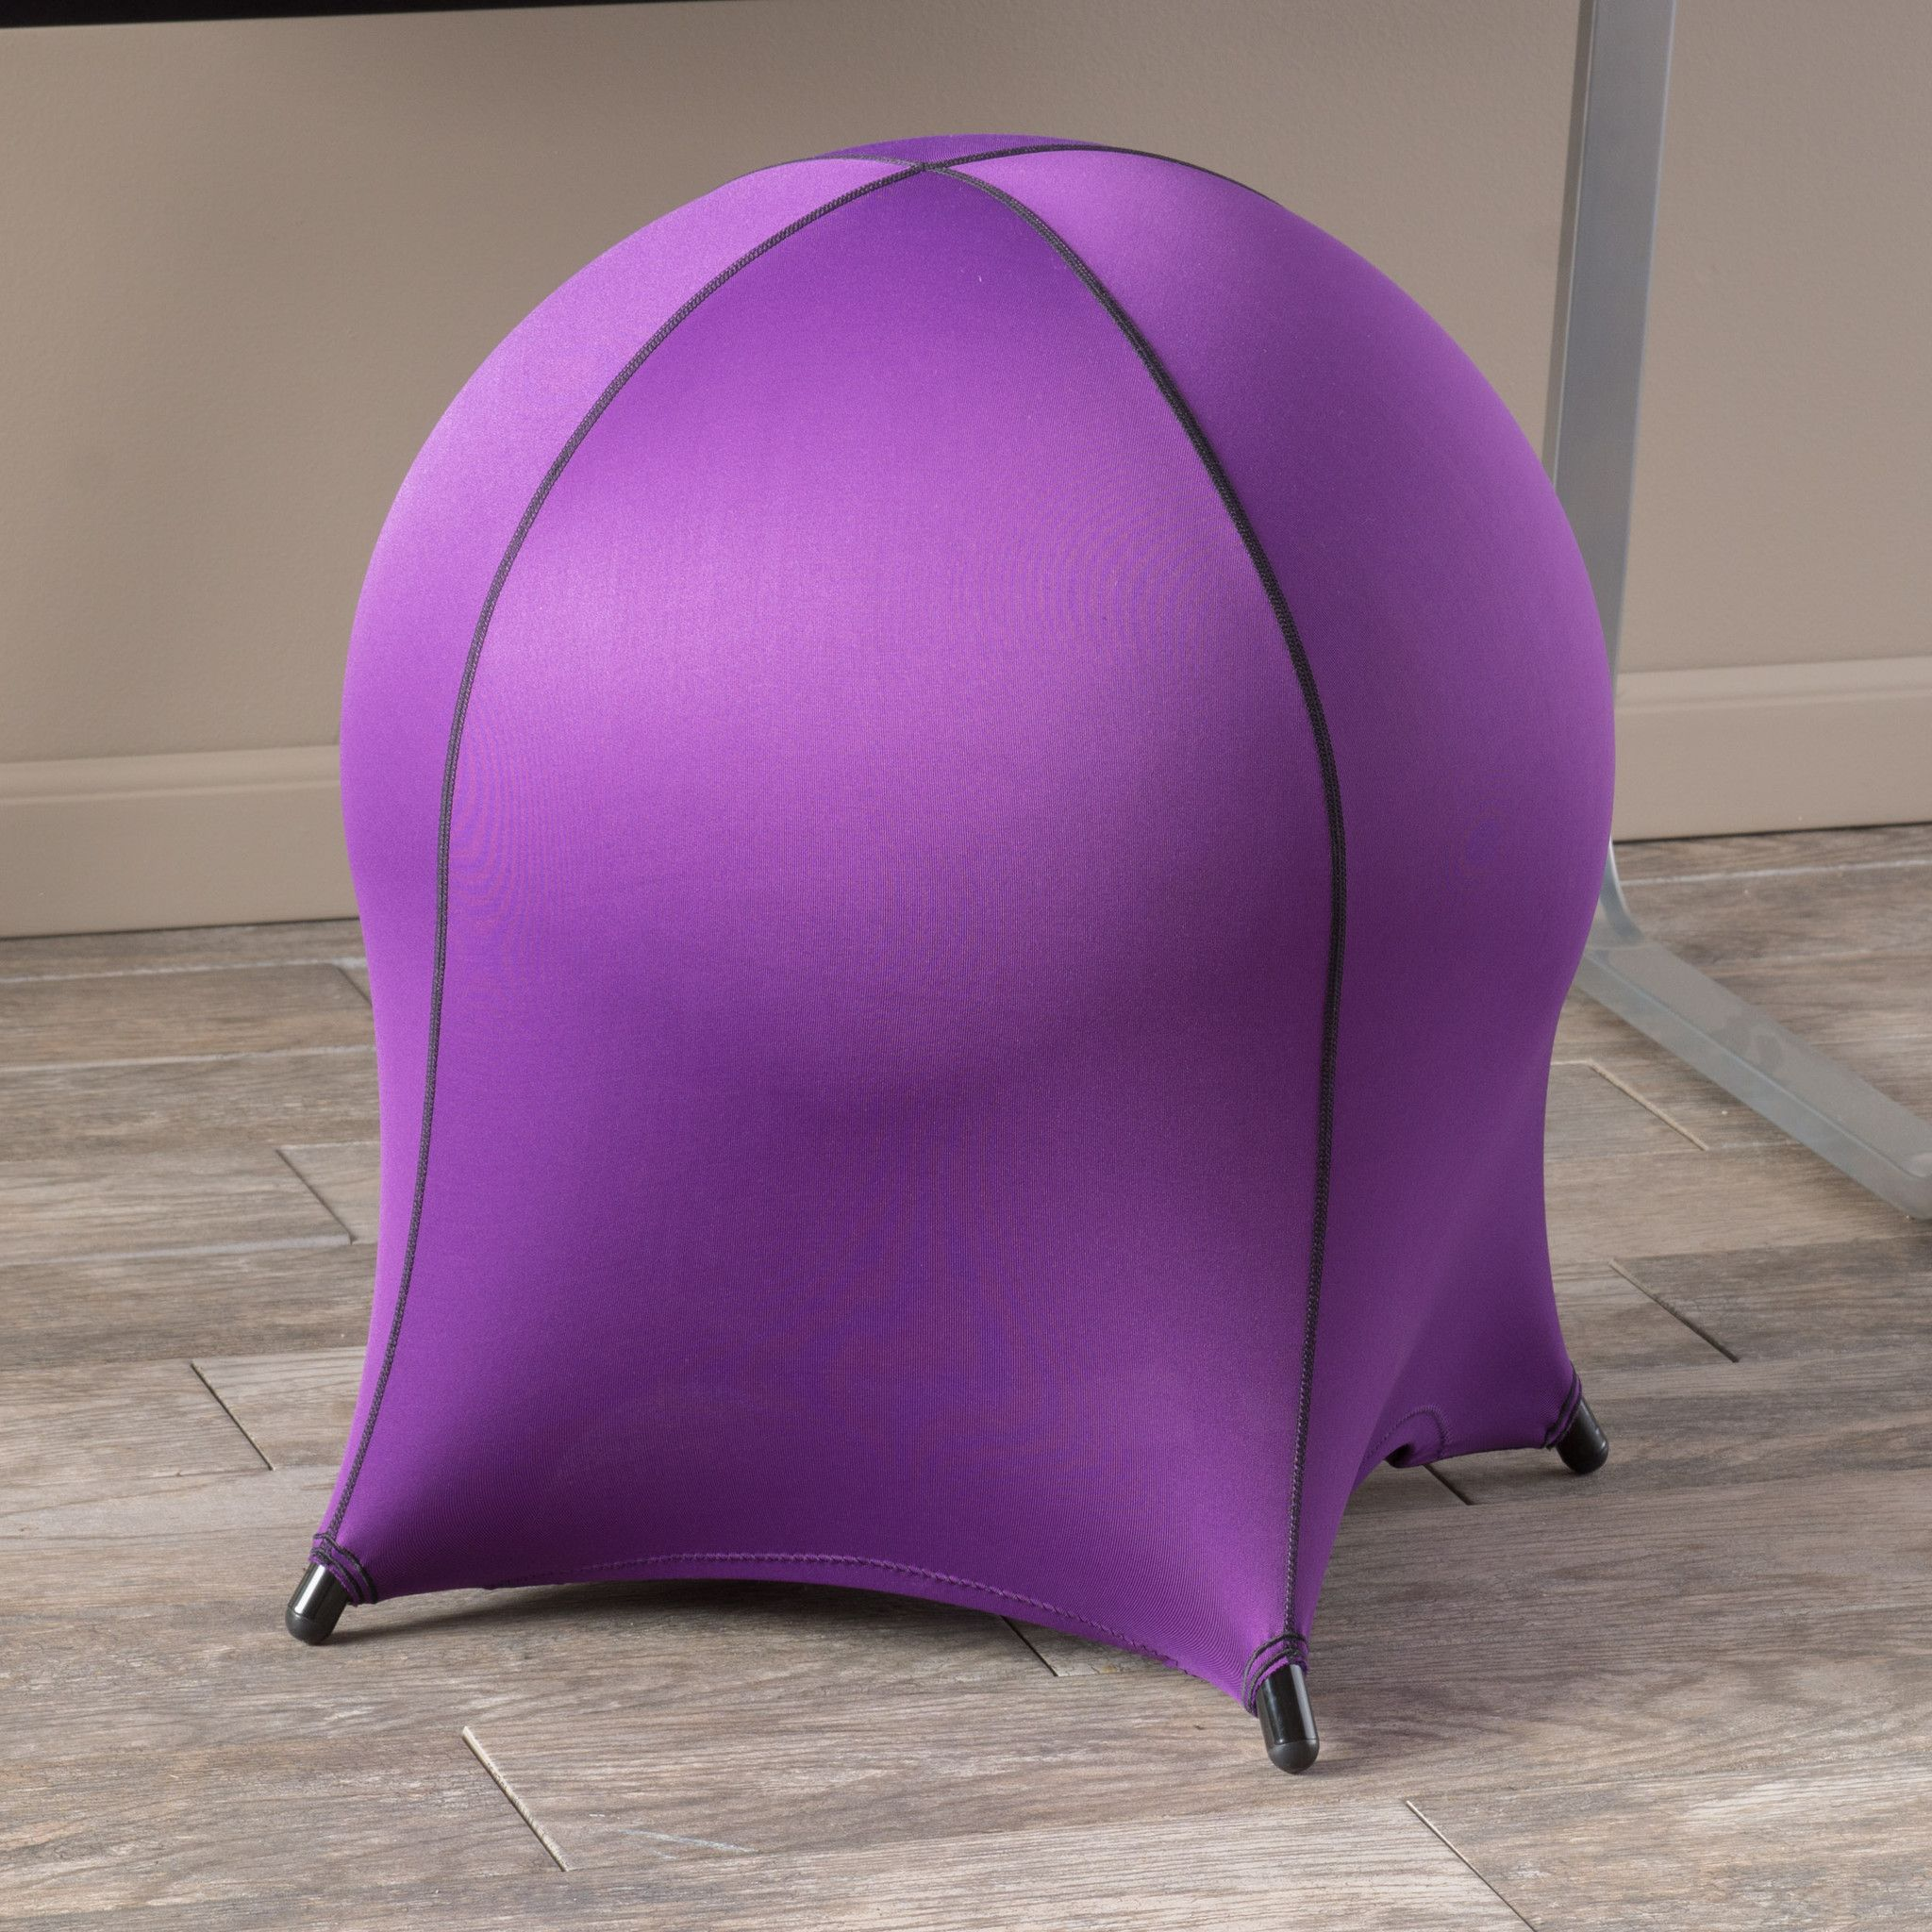 Many people have substituted the basic office chair for the ball